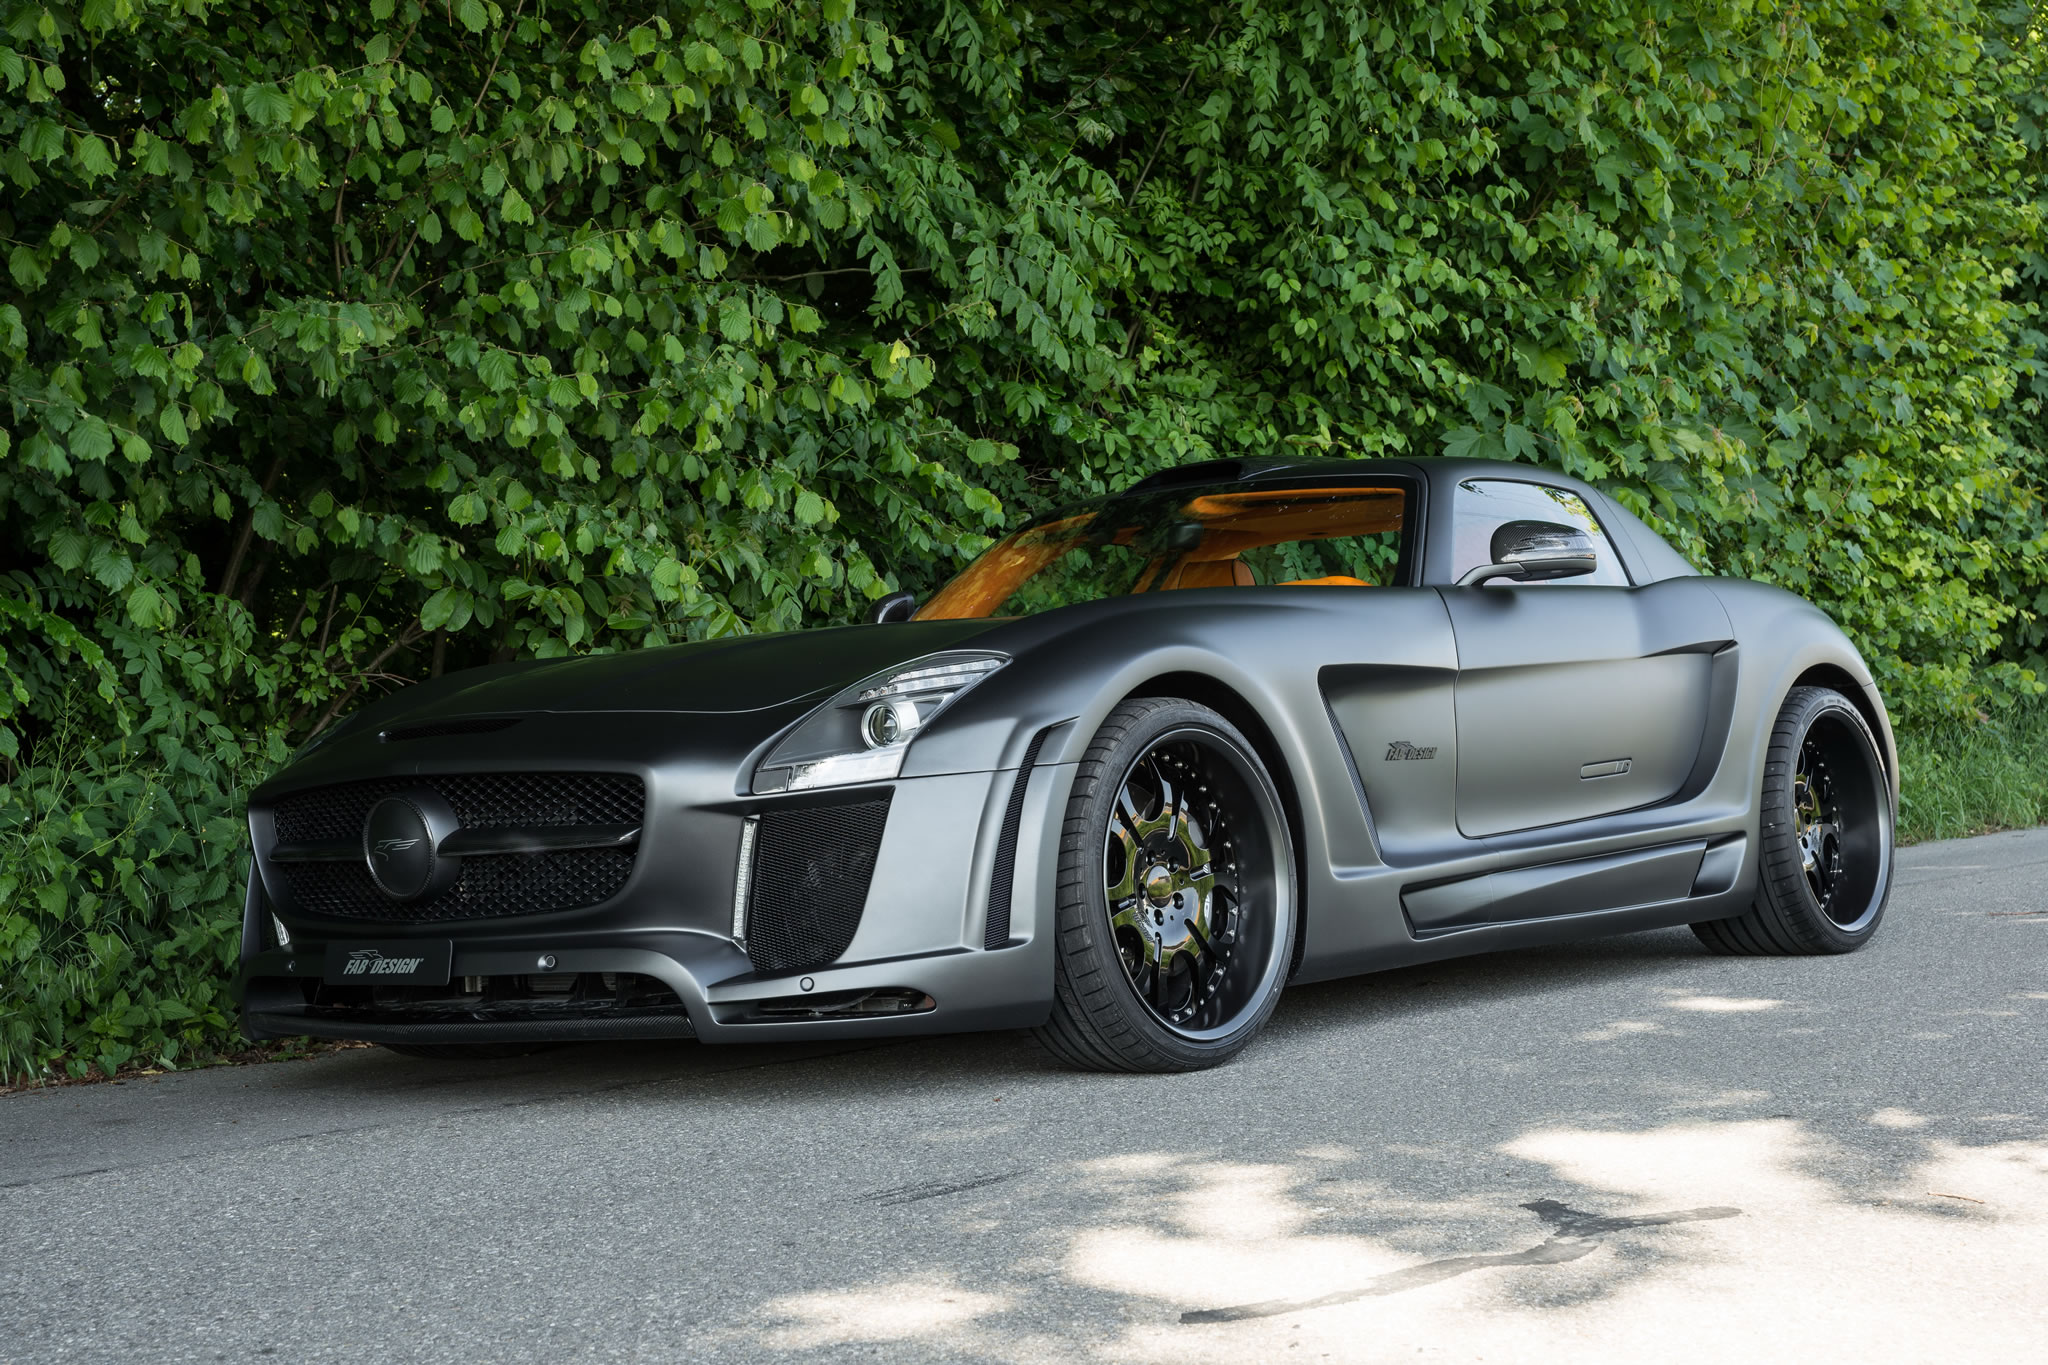 2013 Mercedes-Benz SLS AMG Gullstream by FAB Design ...